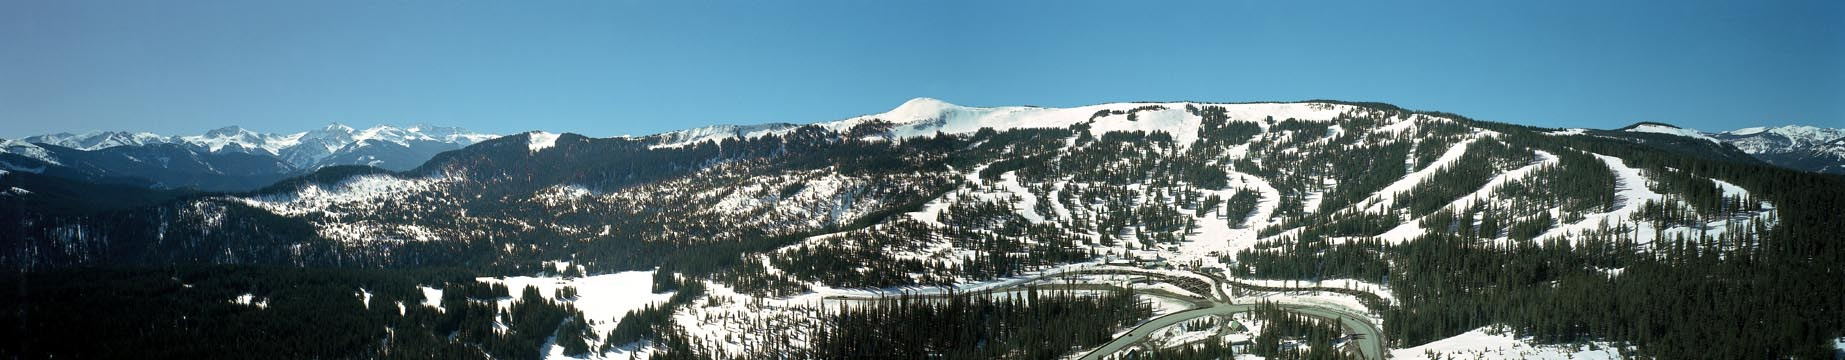 wolfcreek pass